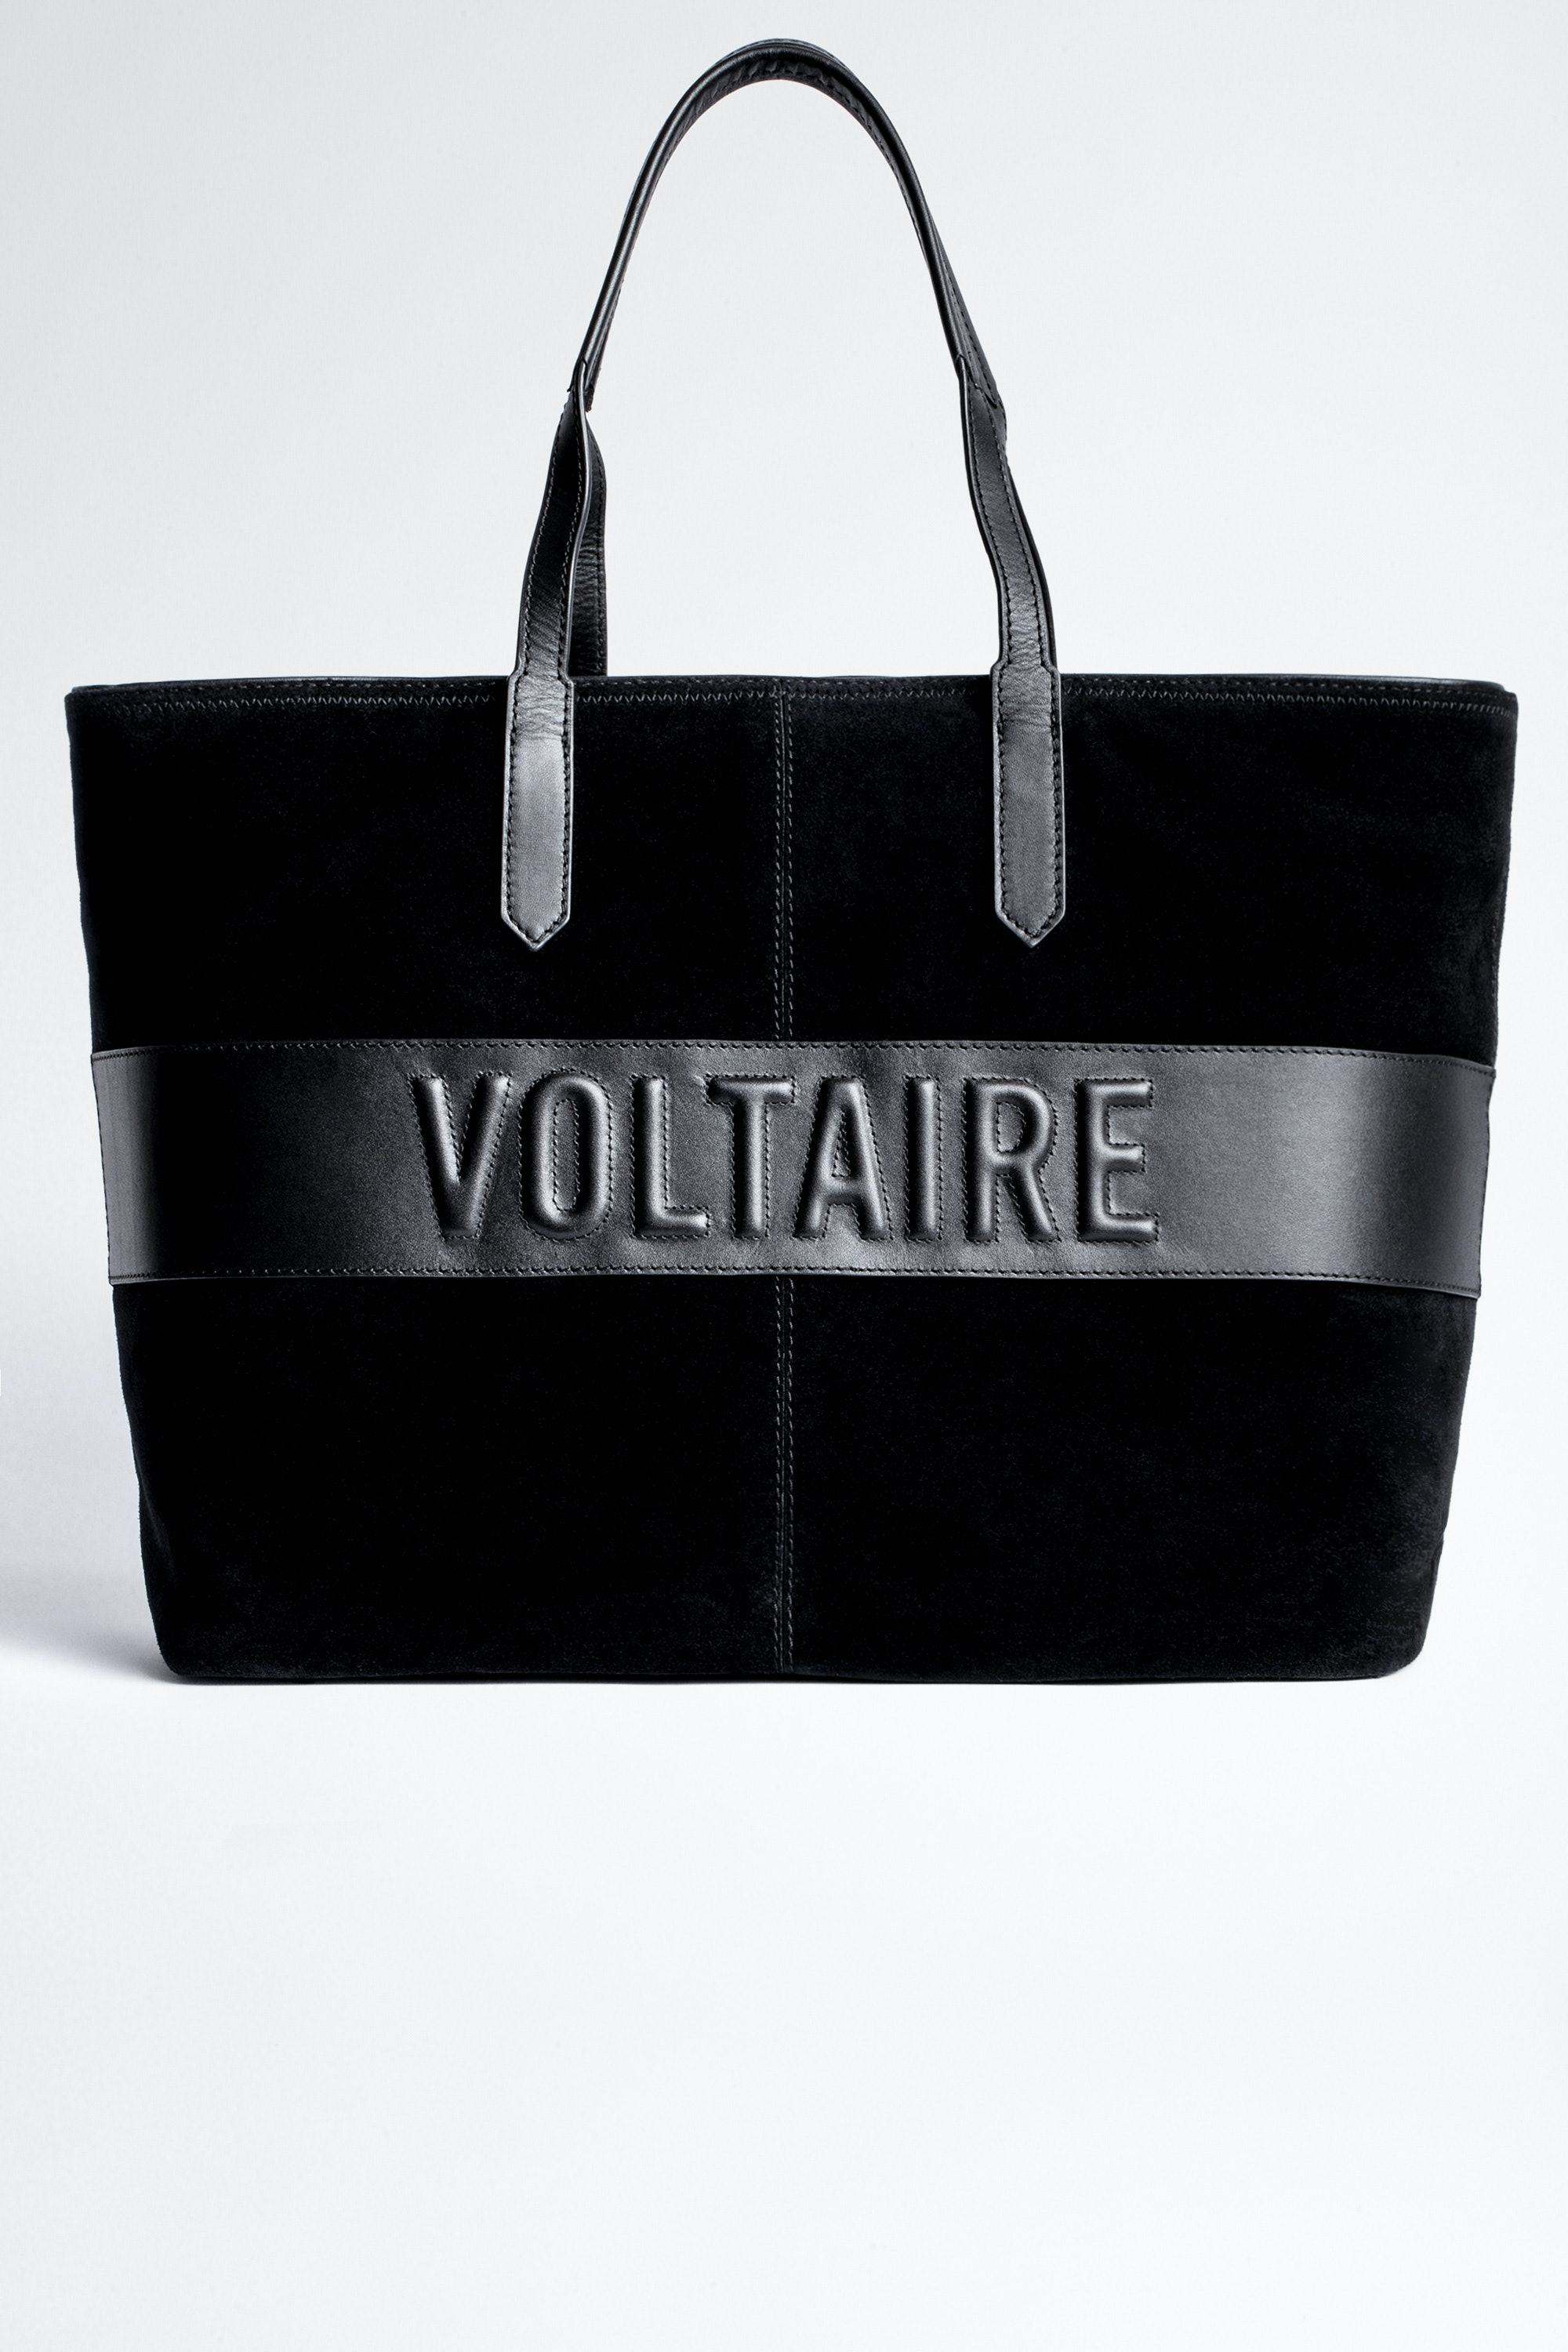 Mick Voltaire Bag